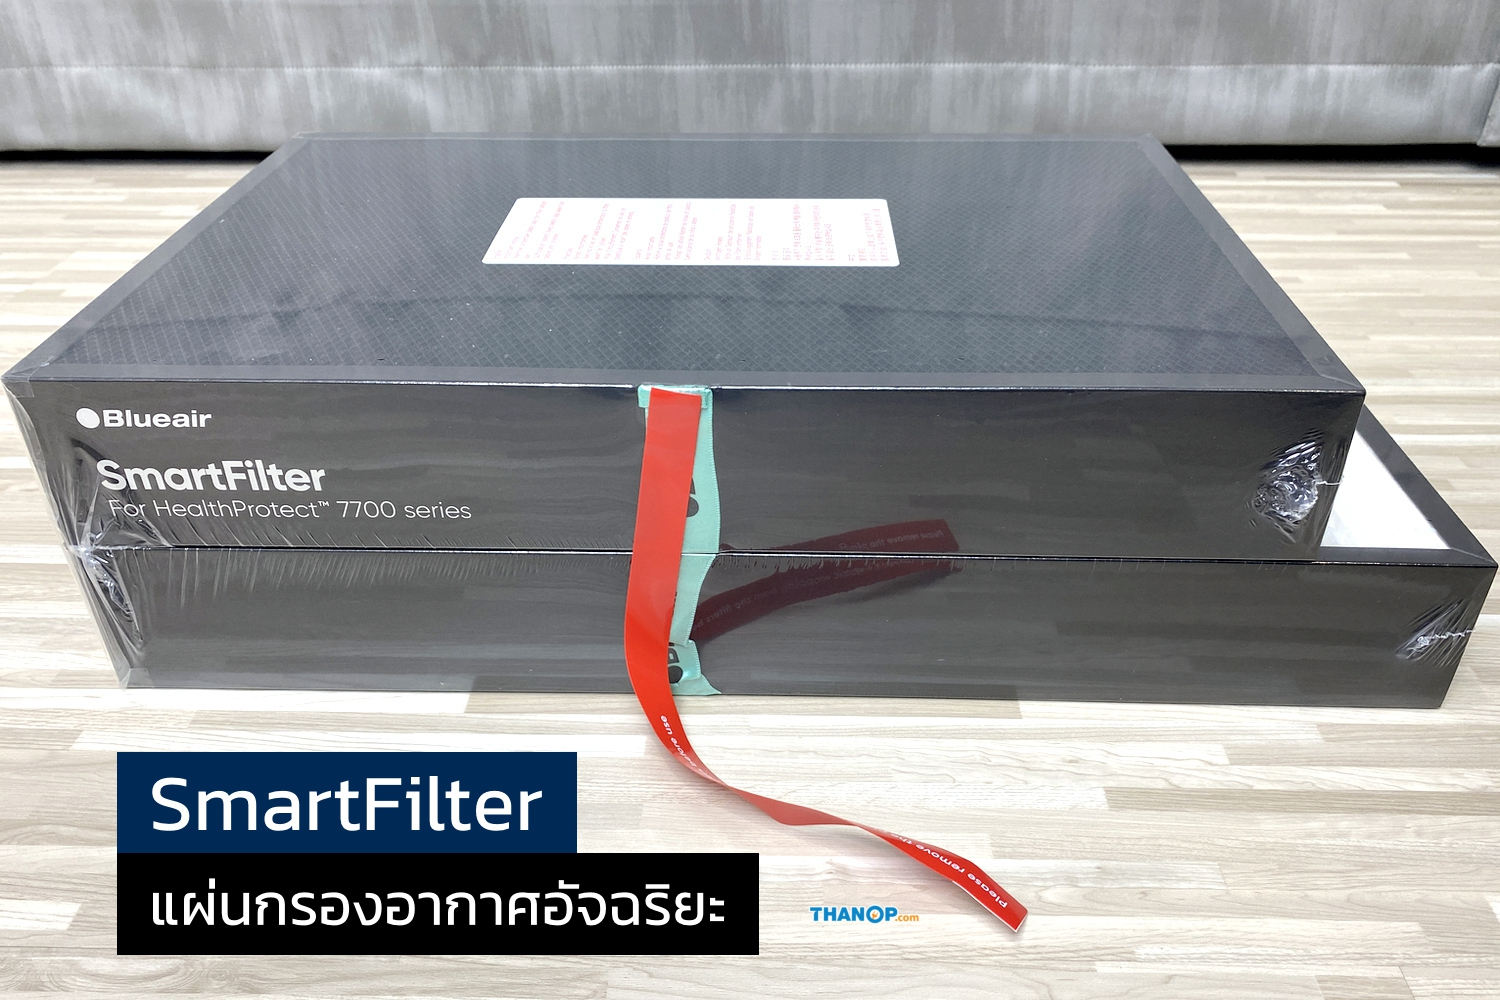 blueair-healthprotect-7770i-feature-smartfilter